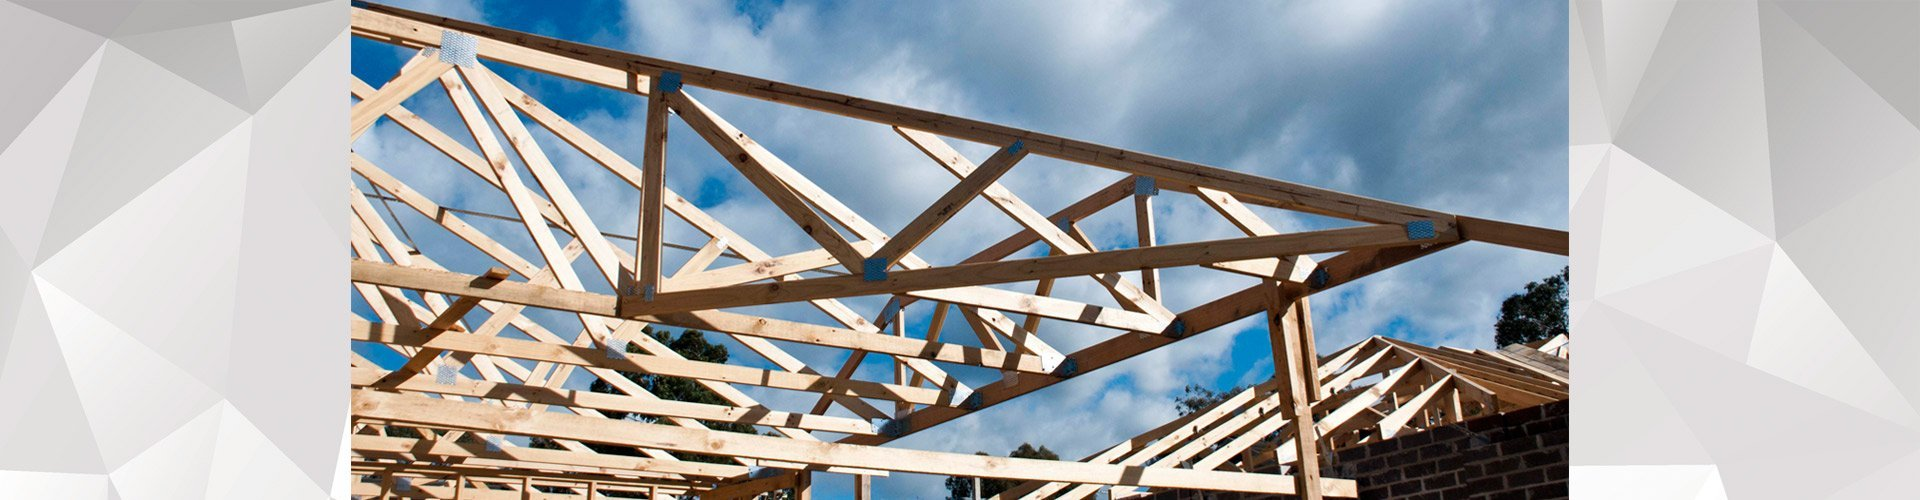 Roof trusses manufactured to fit melbourne 39 s needs for Manufactured roof trusses